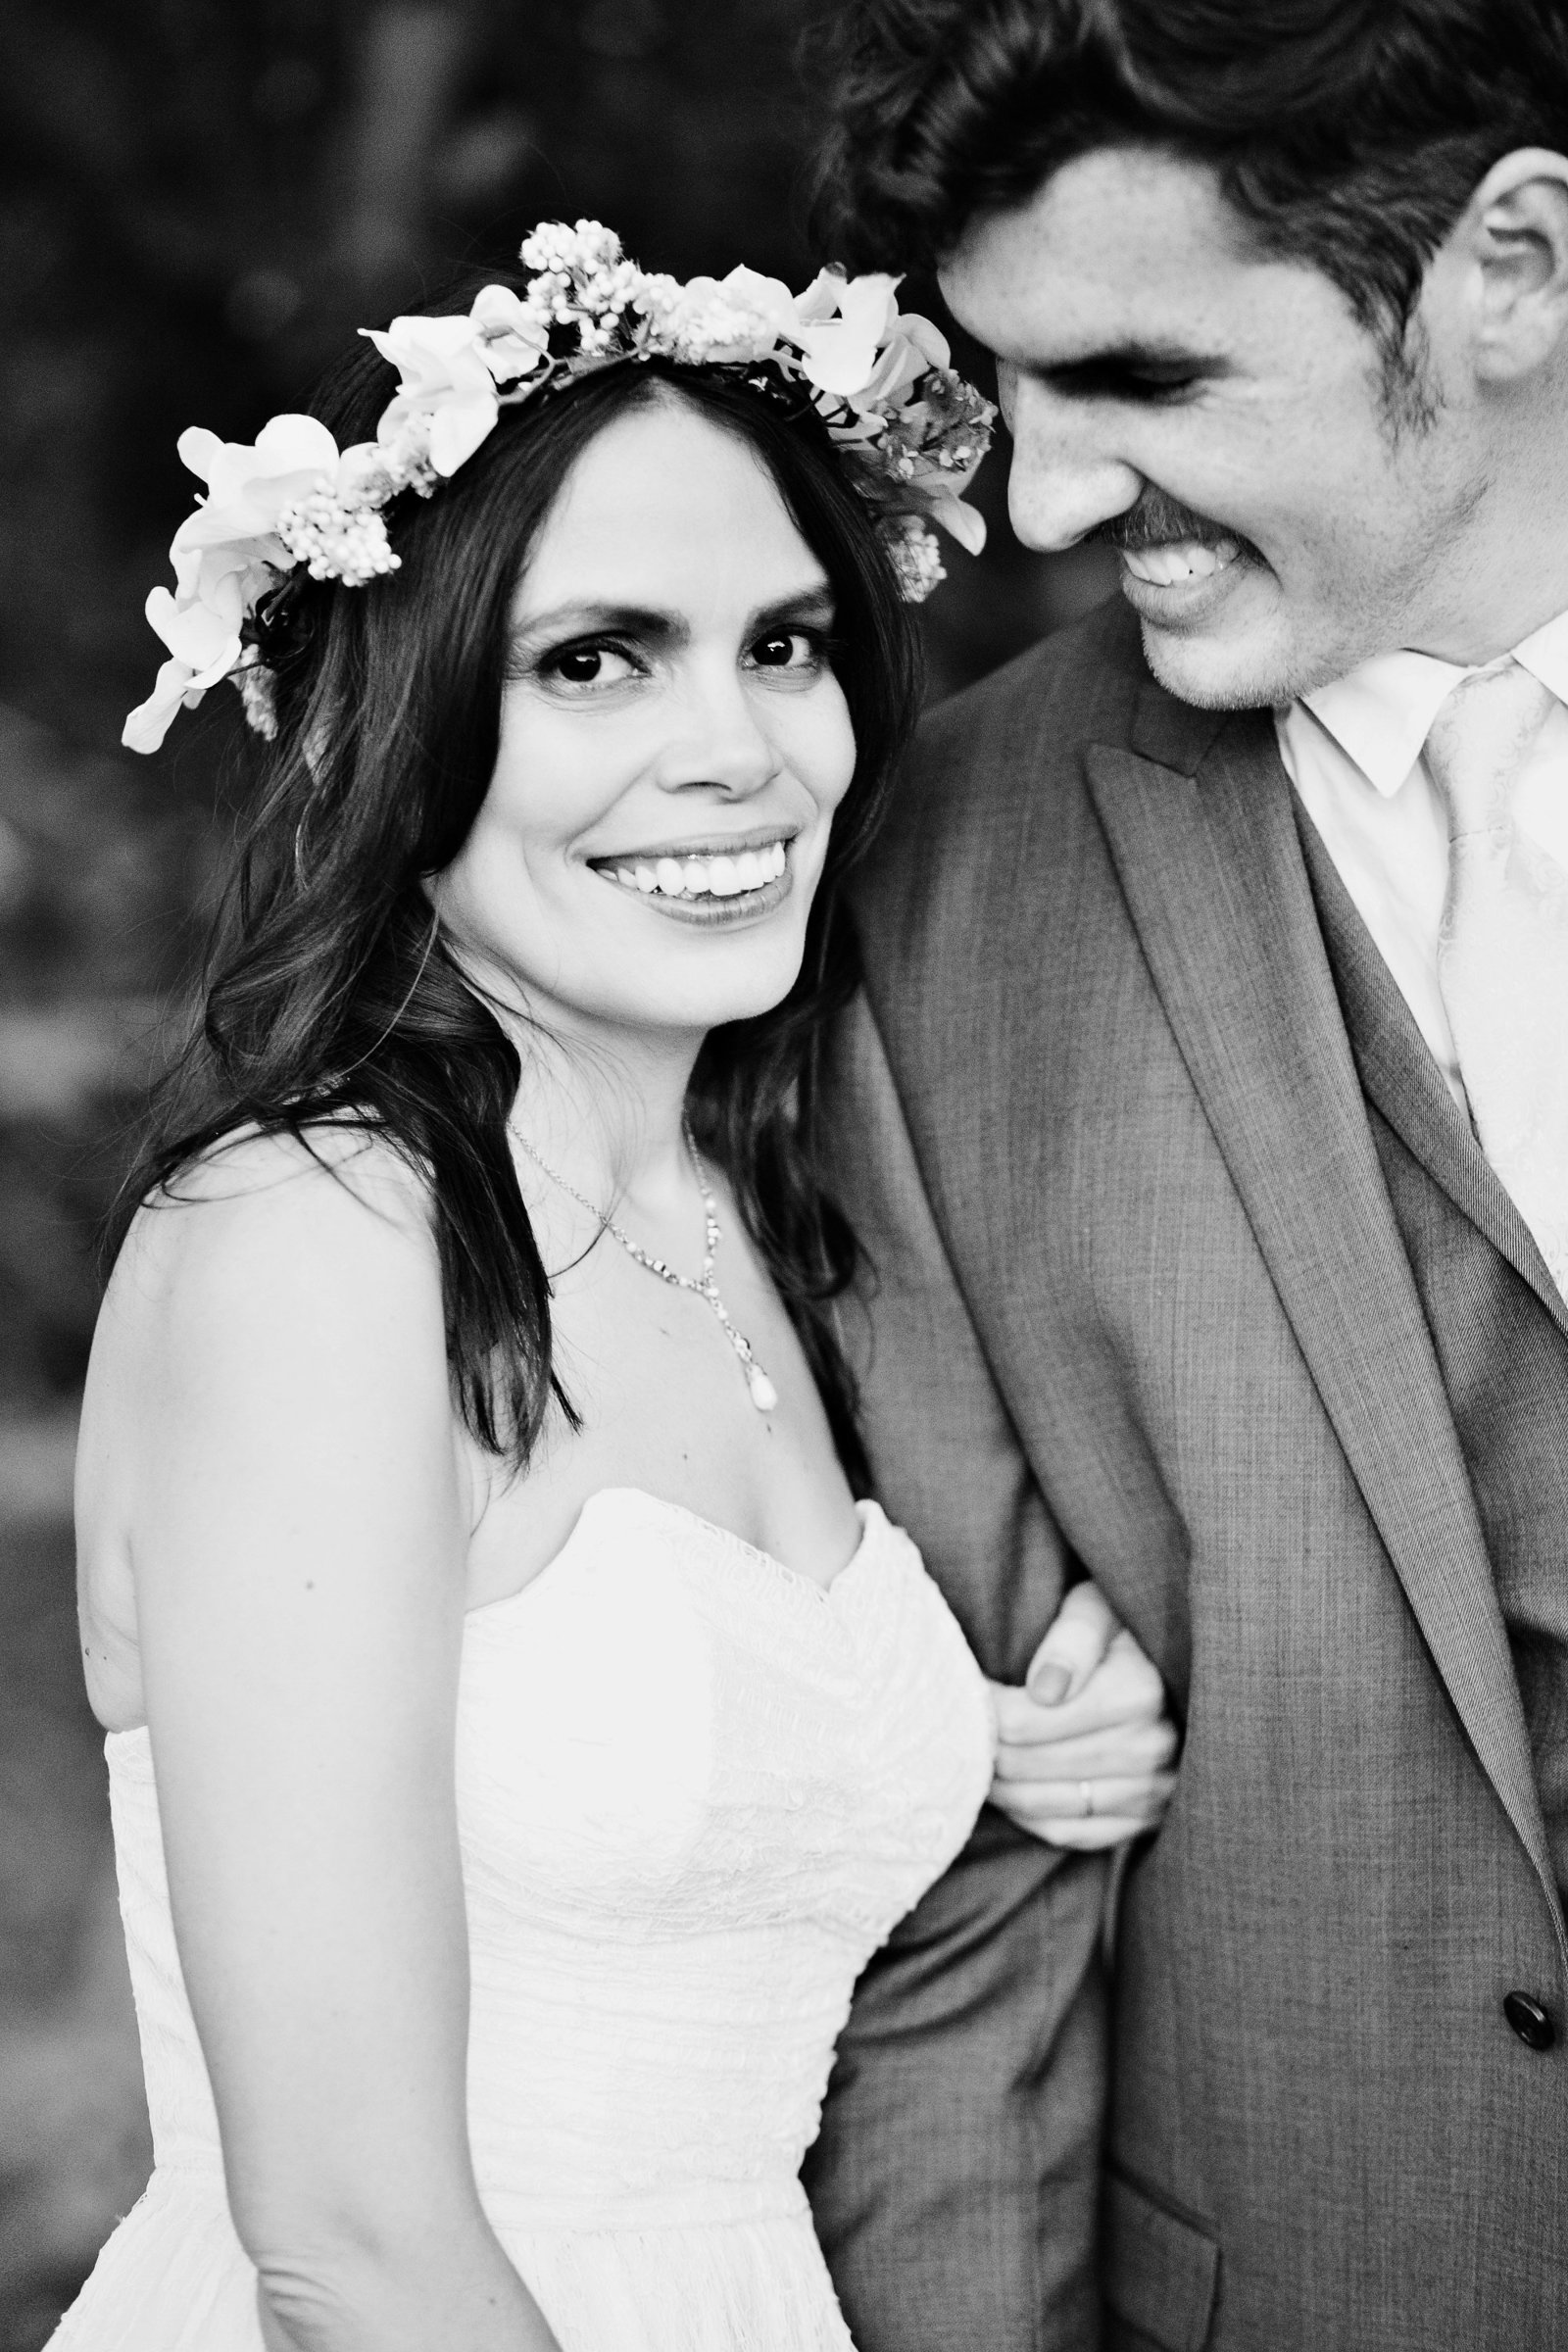 Bride + Groom Portraits Denver Colorado Springs CO Wedding Photographer Genevieve Hansen 028